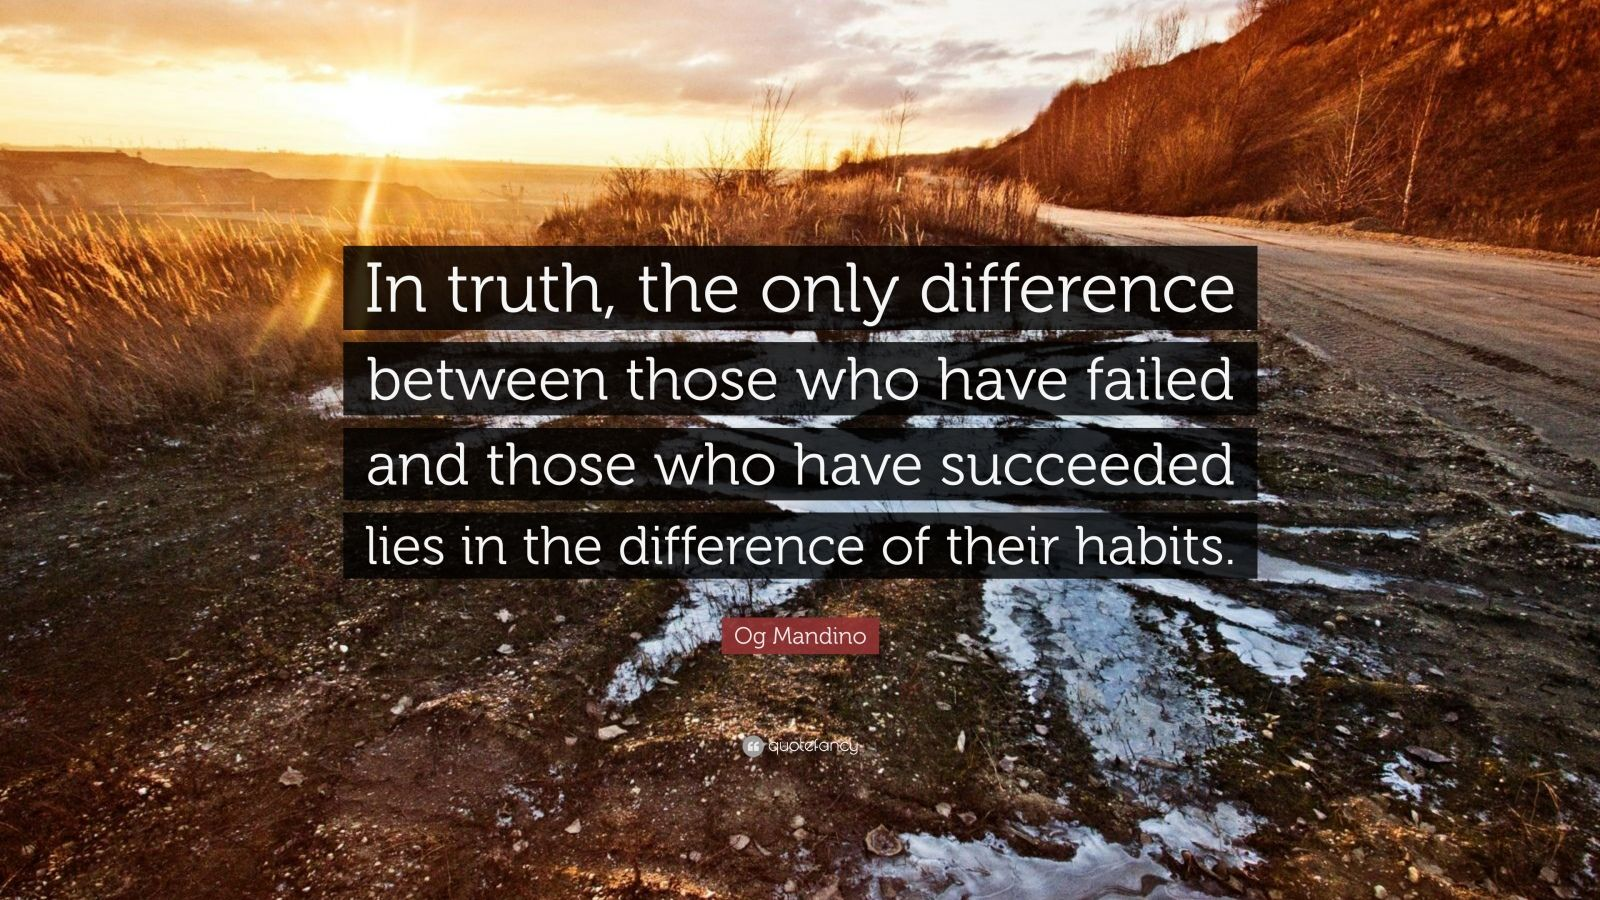 """Og Mandino Quote: """"In truth, the only difference between those who have failed and those who have succeeded lies in the difference of their habits."""""""